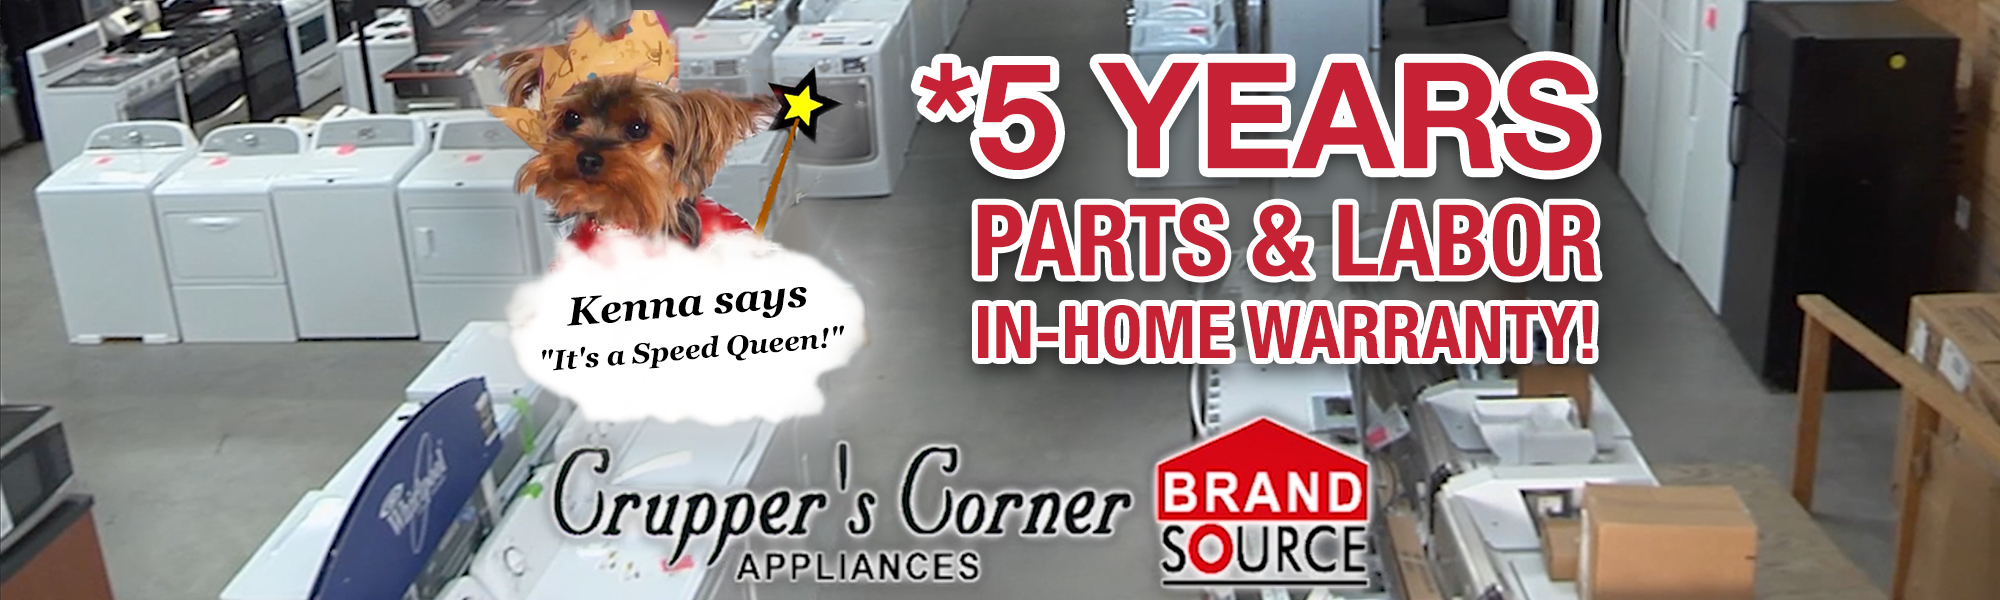 25 Years with Crupper's Corner